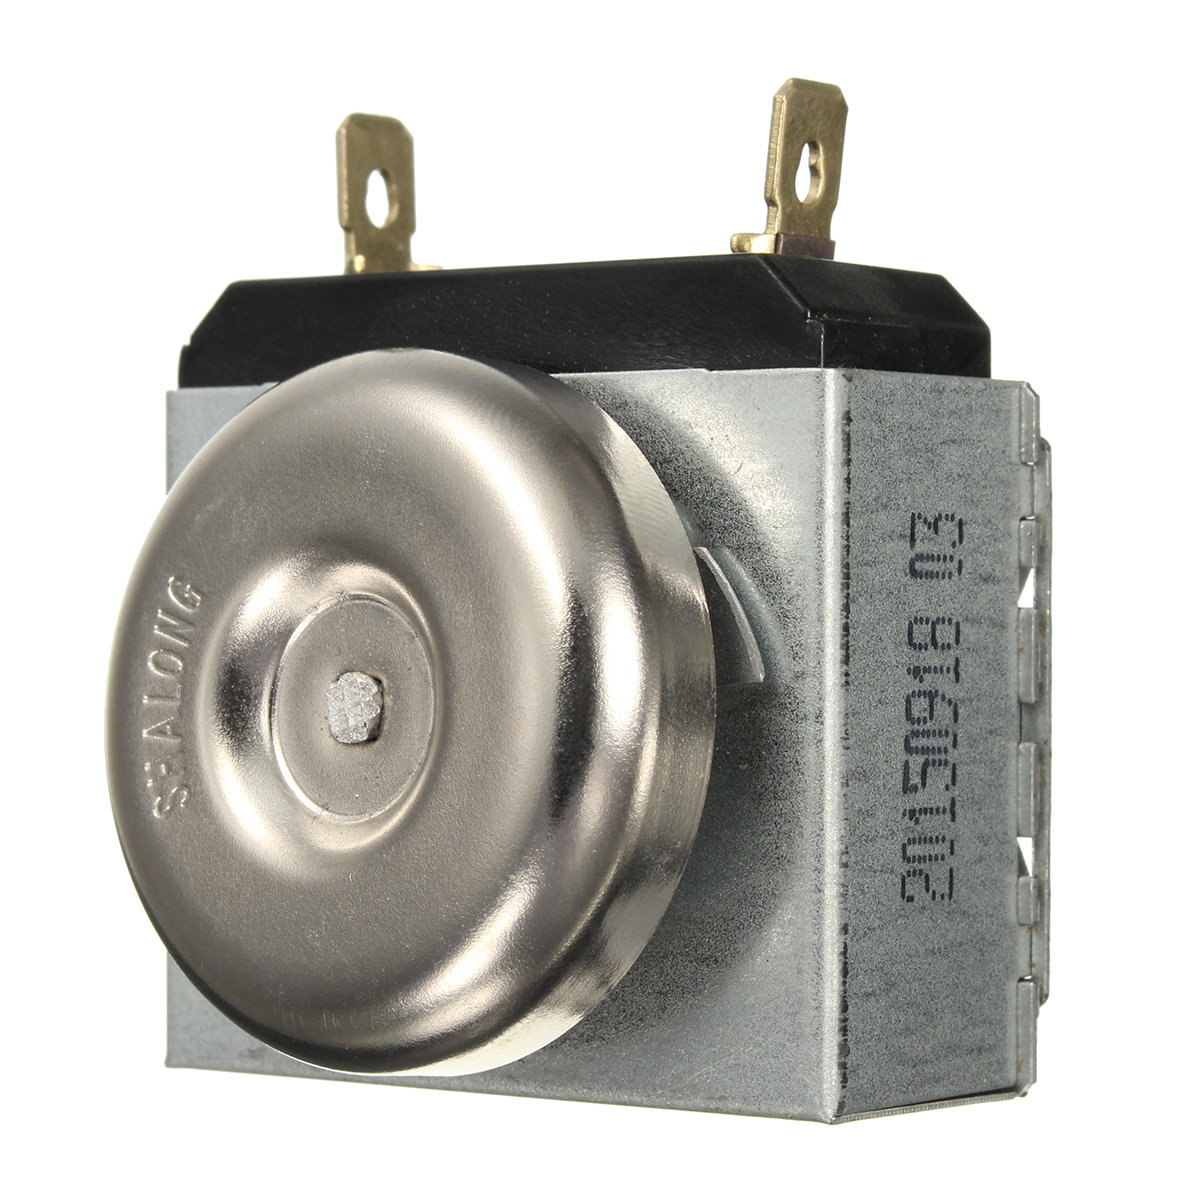 DKJ/1-60 60 Minutes 60M Timer Switch For Electronic Microwave Over Cooker